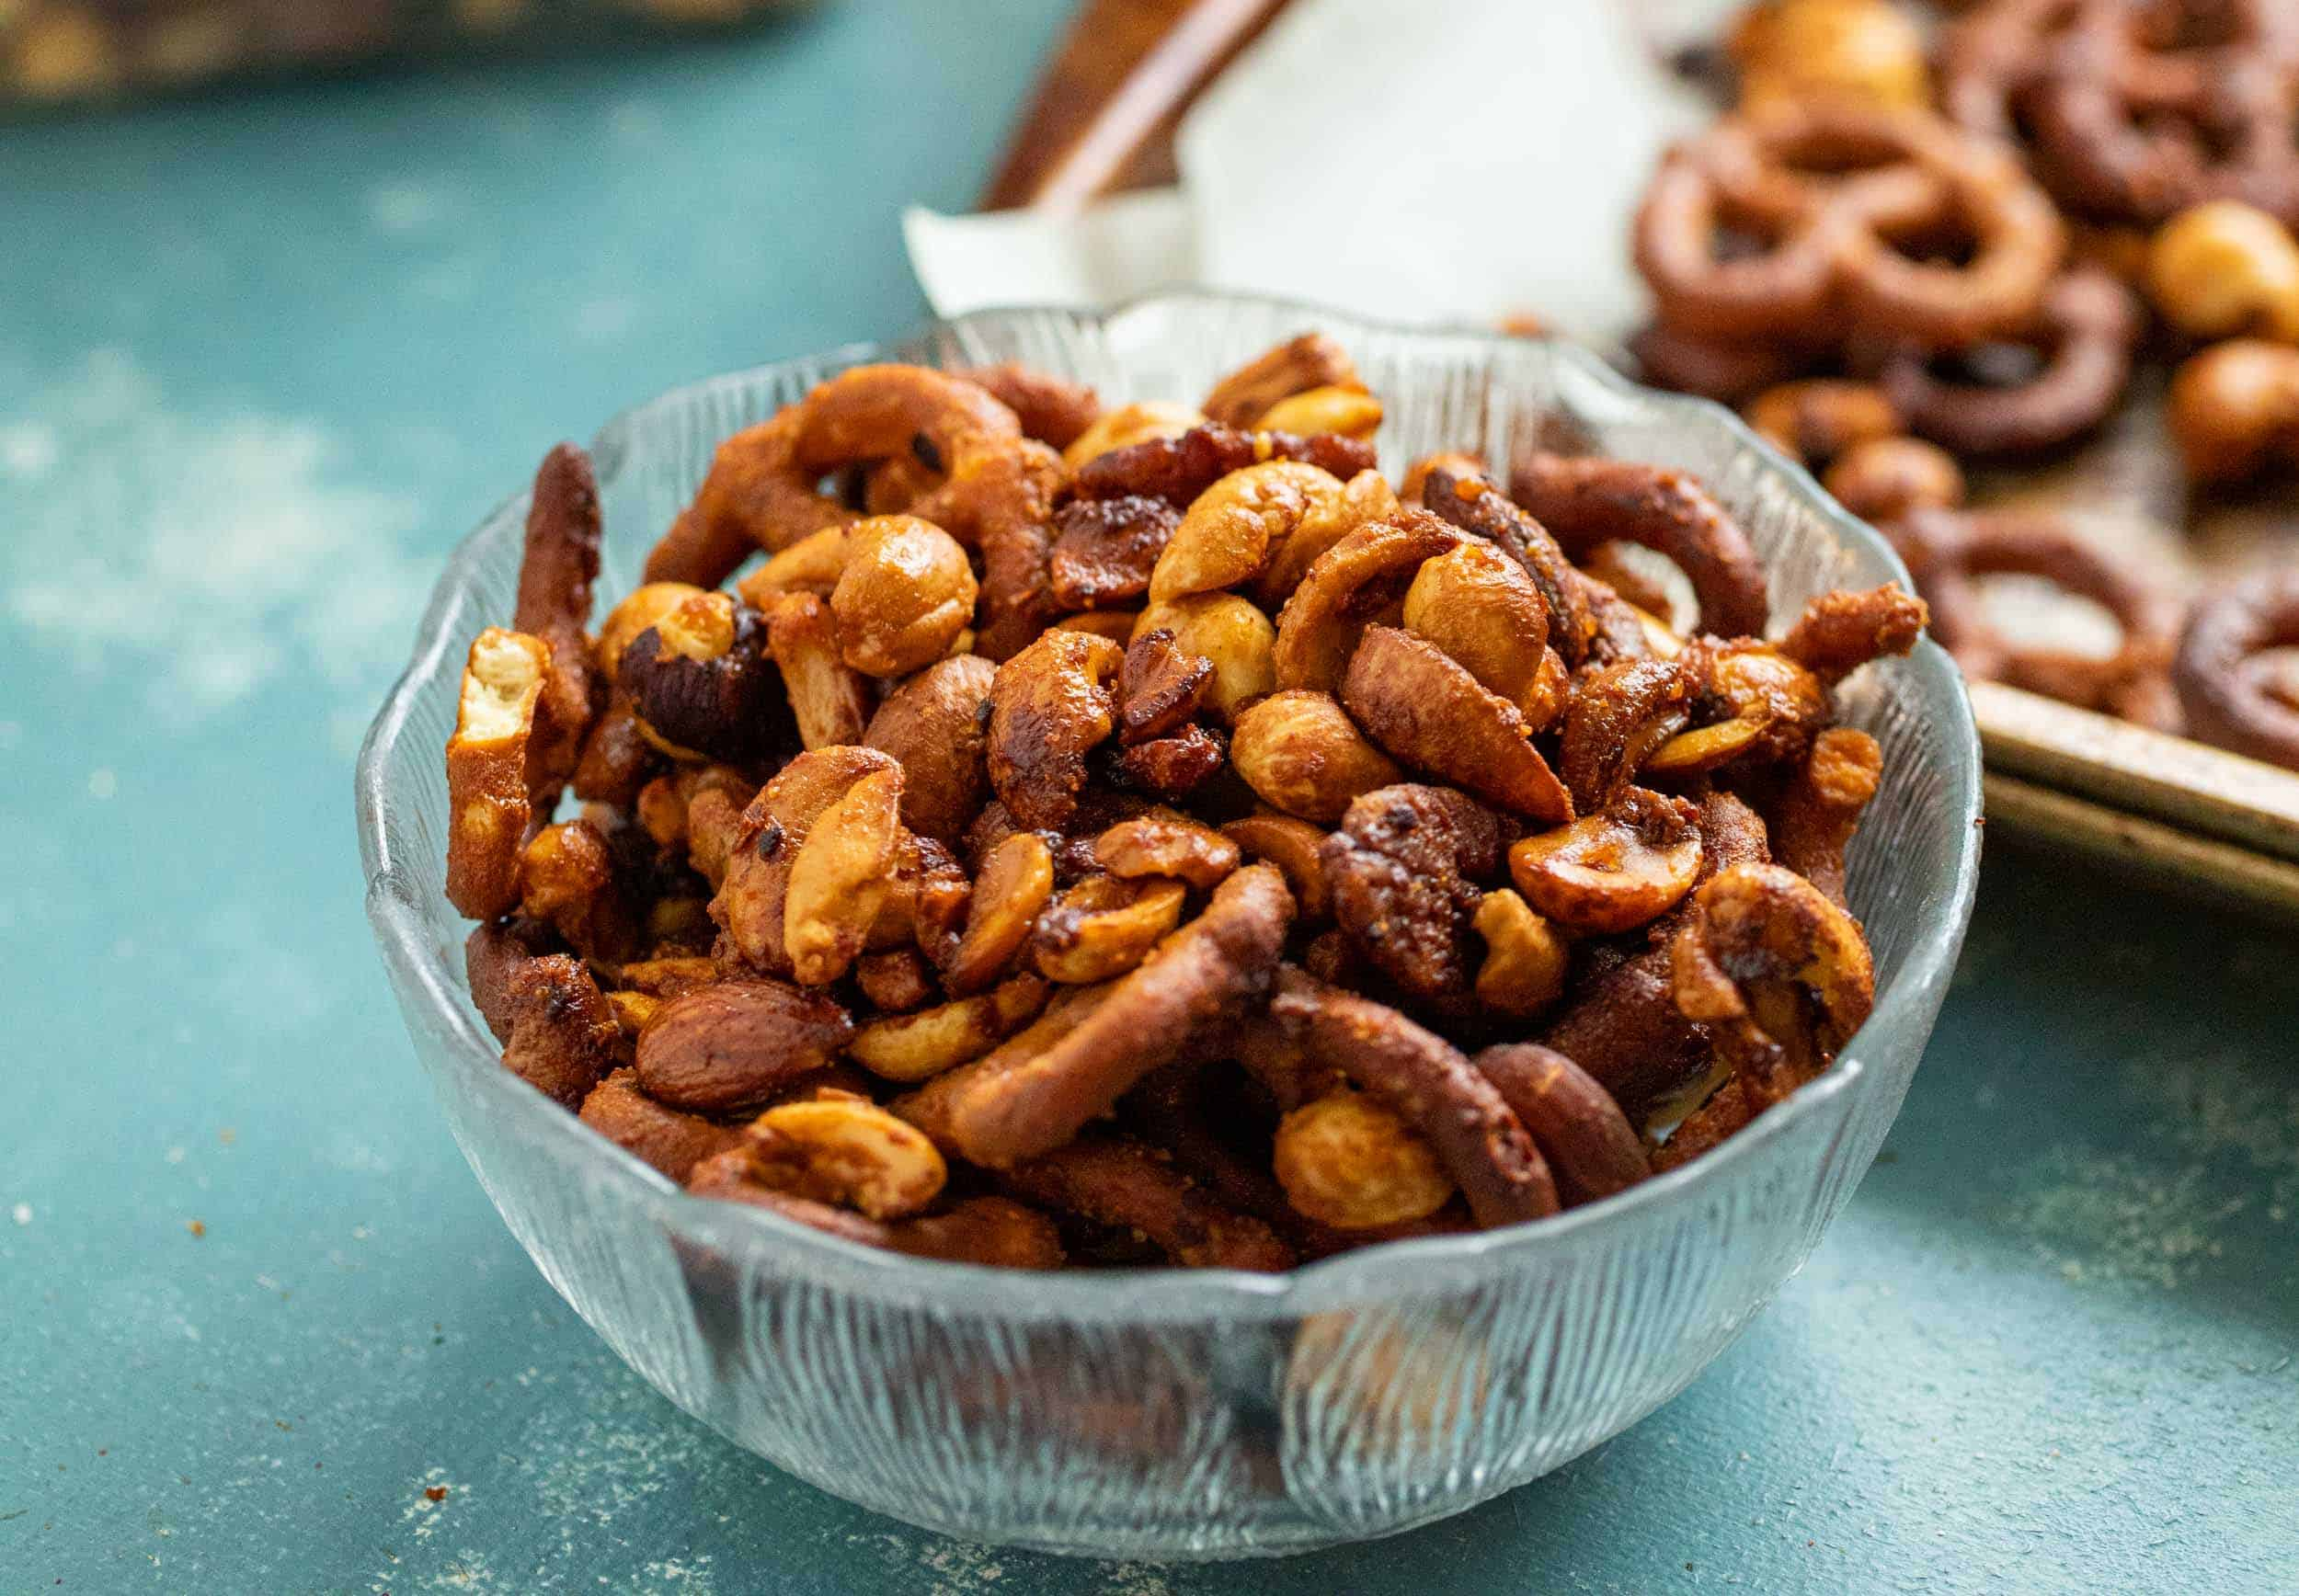 Honey Chili Snack Mix